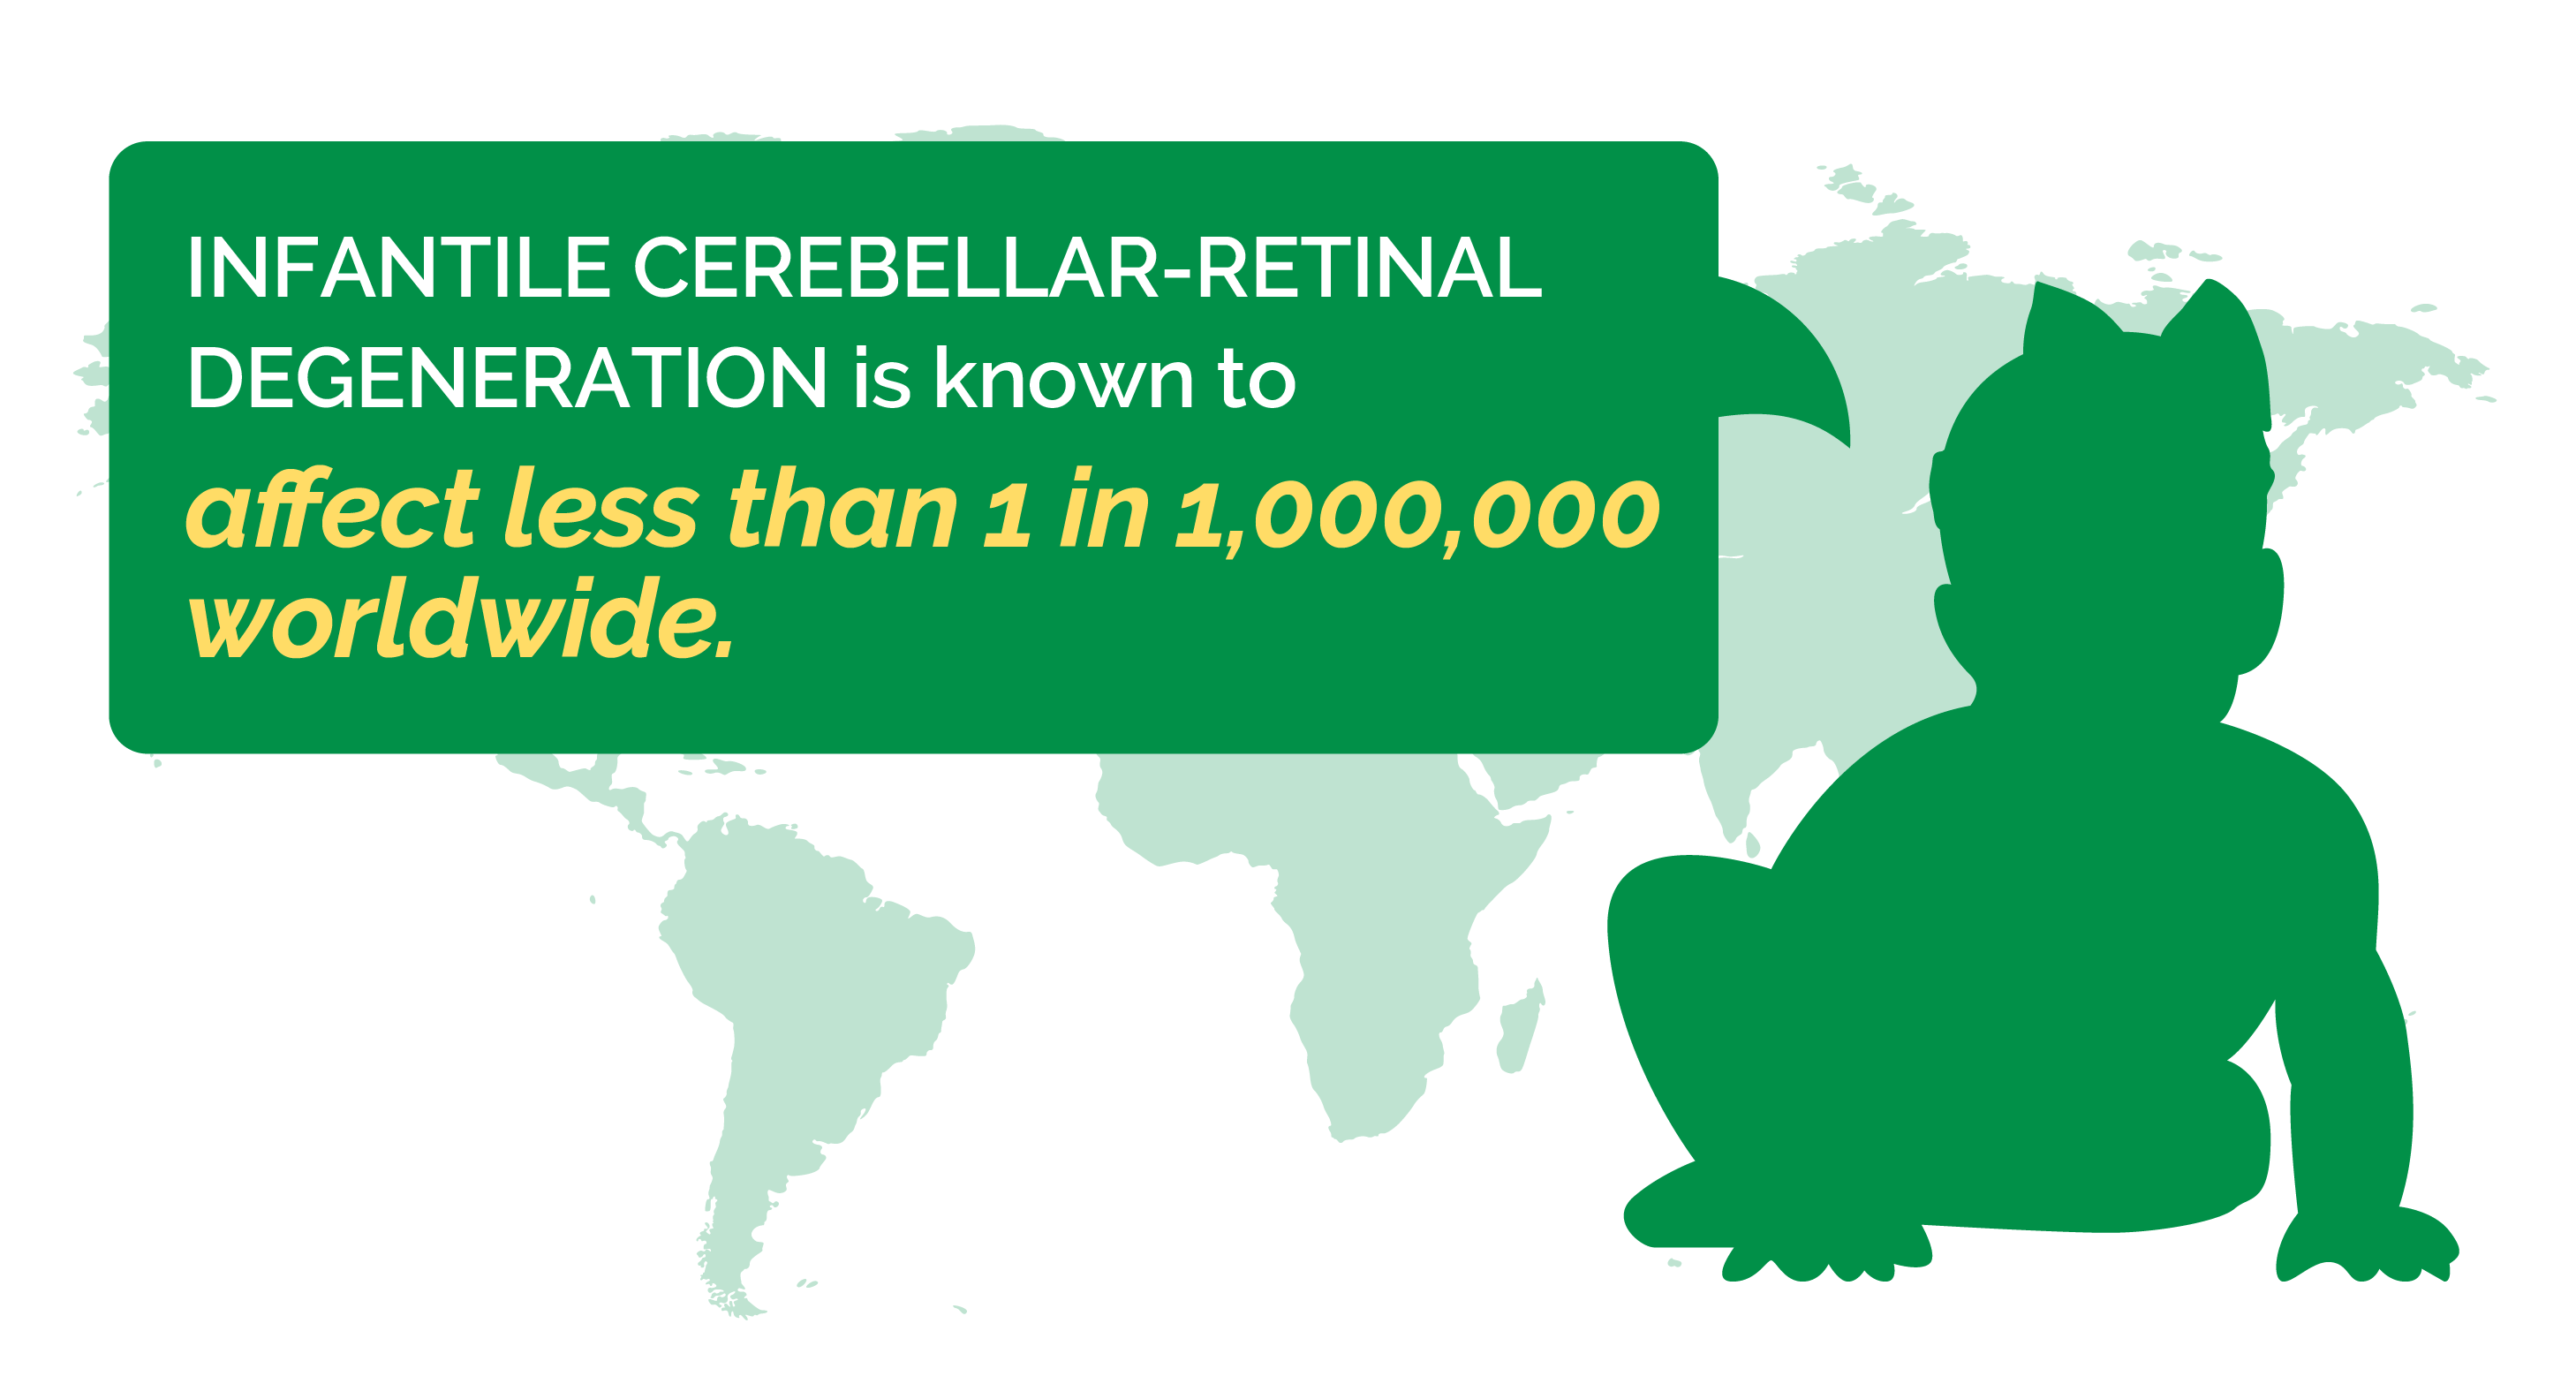 """Map background with silhouette of a baby, and words saying """"Infantile cerebellar-retinal degeneration is known to affect less than 1 in 1,000,000 worldwide."""""""